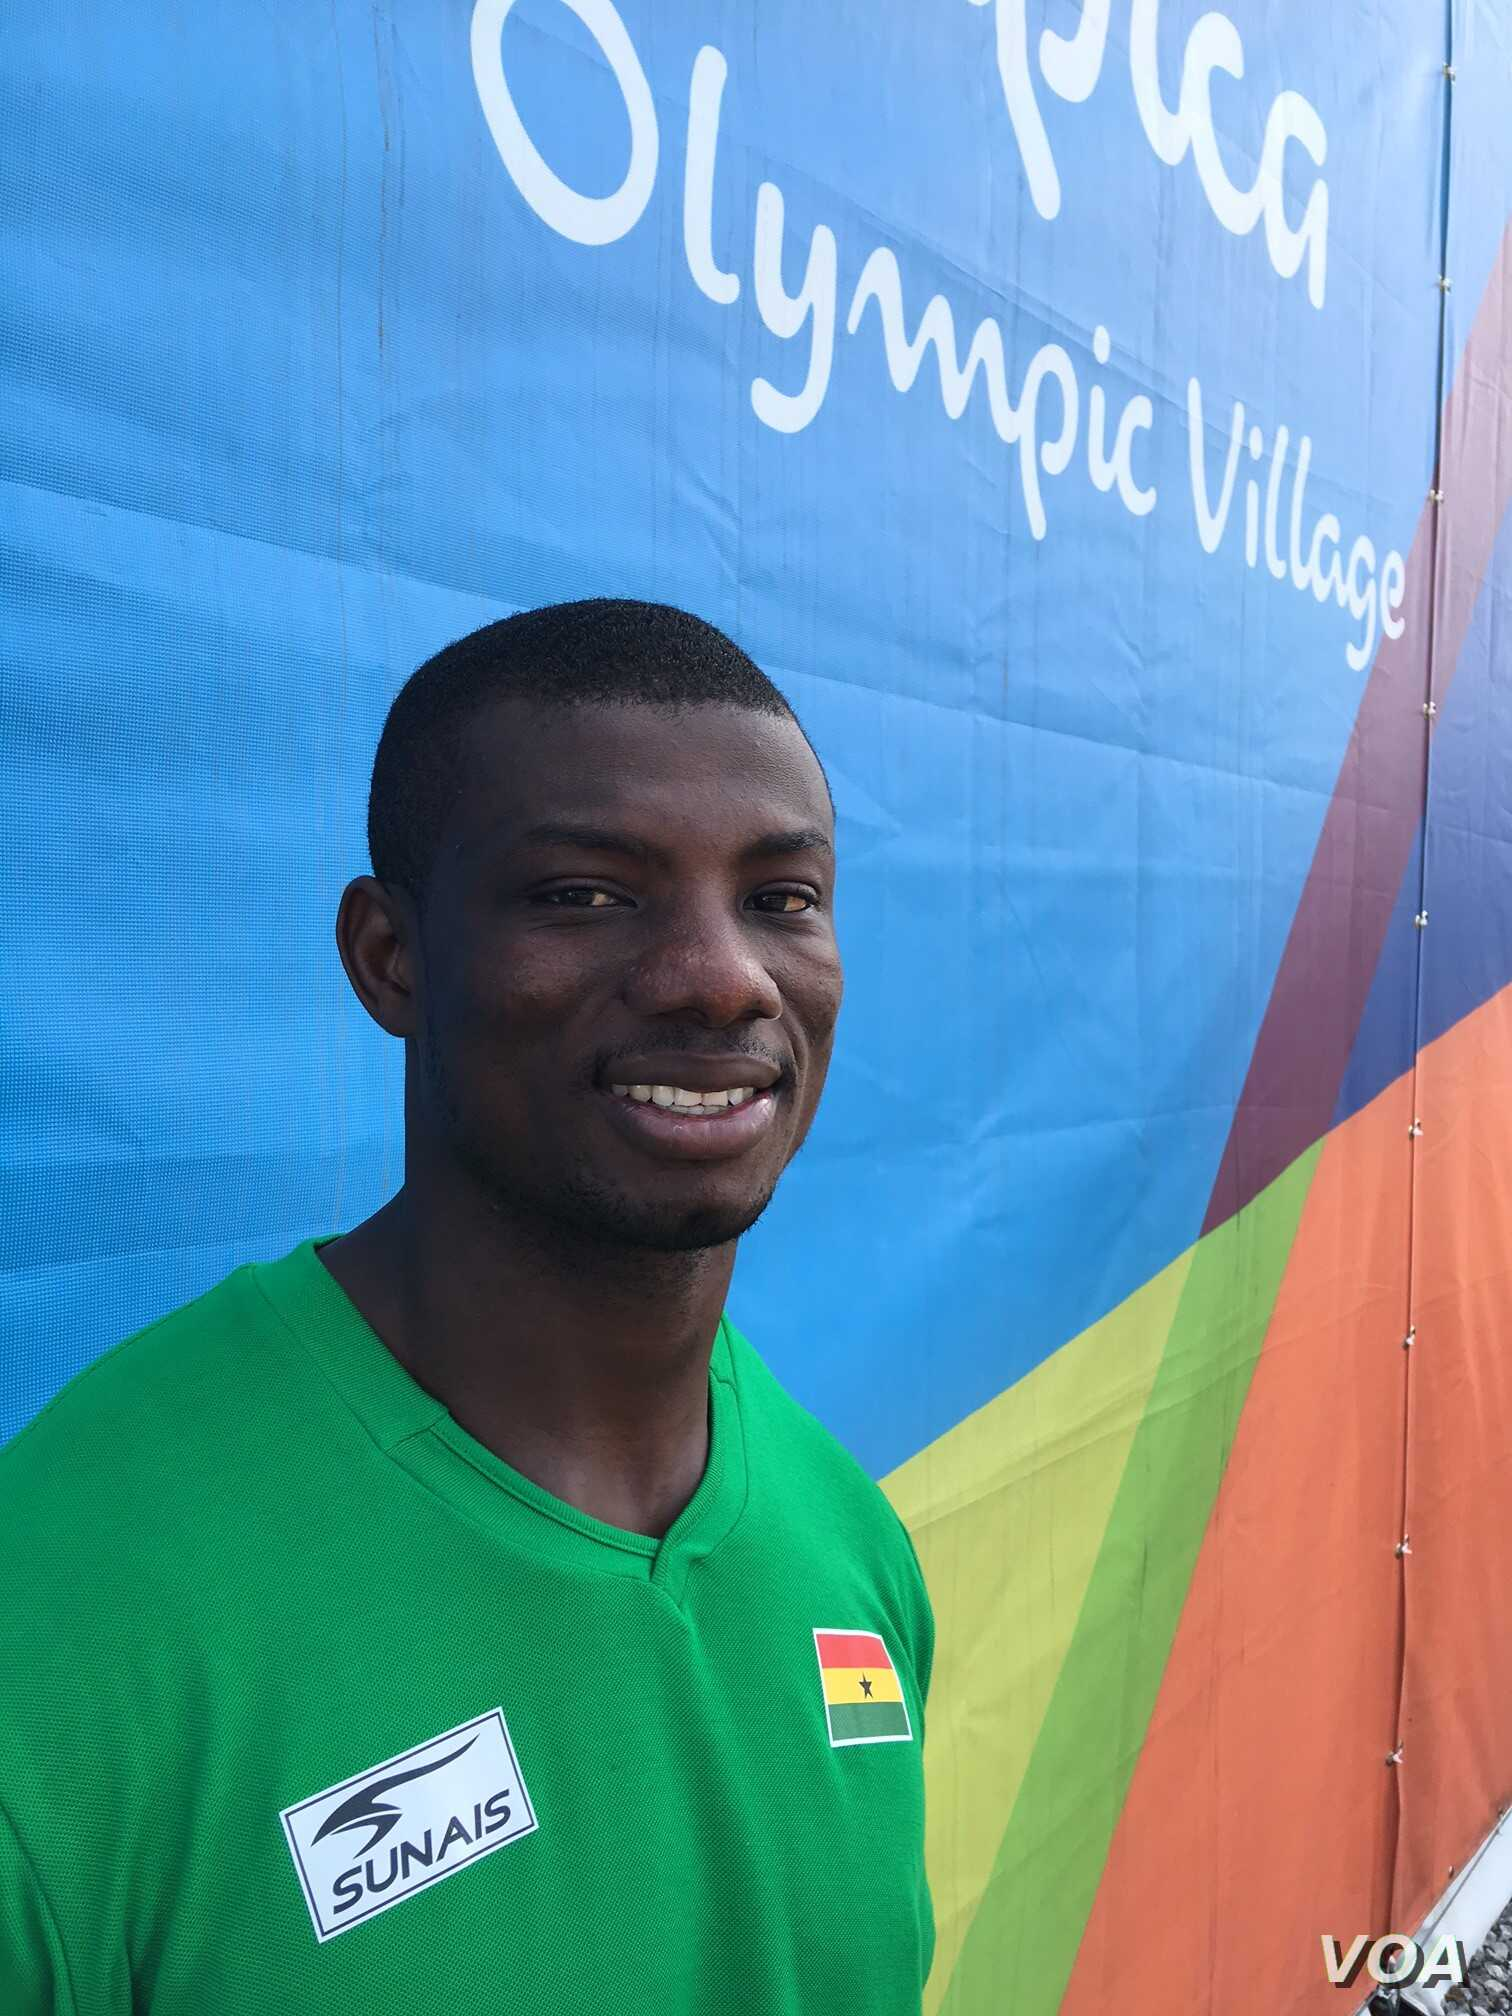 John Ampomah, 26, a senior at Middle Tennessee State, was the silver medalist in the javelin at last year's All Africa Games with a throw of 82.96 meters. Now, he'll compete for Ghana in Rio on Wednesday night. (P. Brewer/VOA)